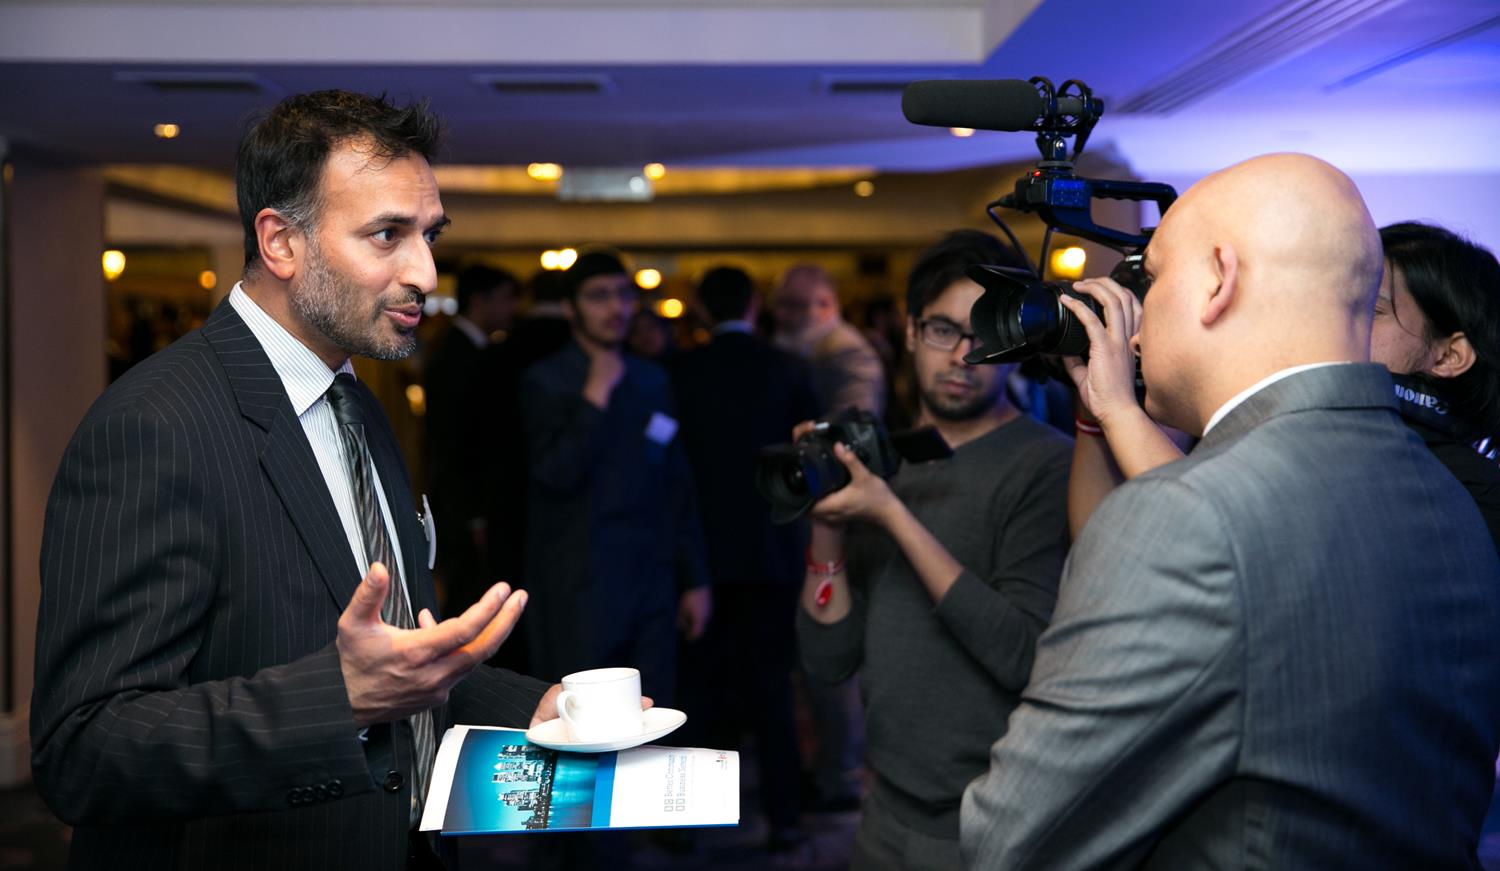 Corporate Photography of business man giving interview by MAKSAM London Photographer